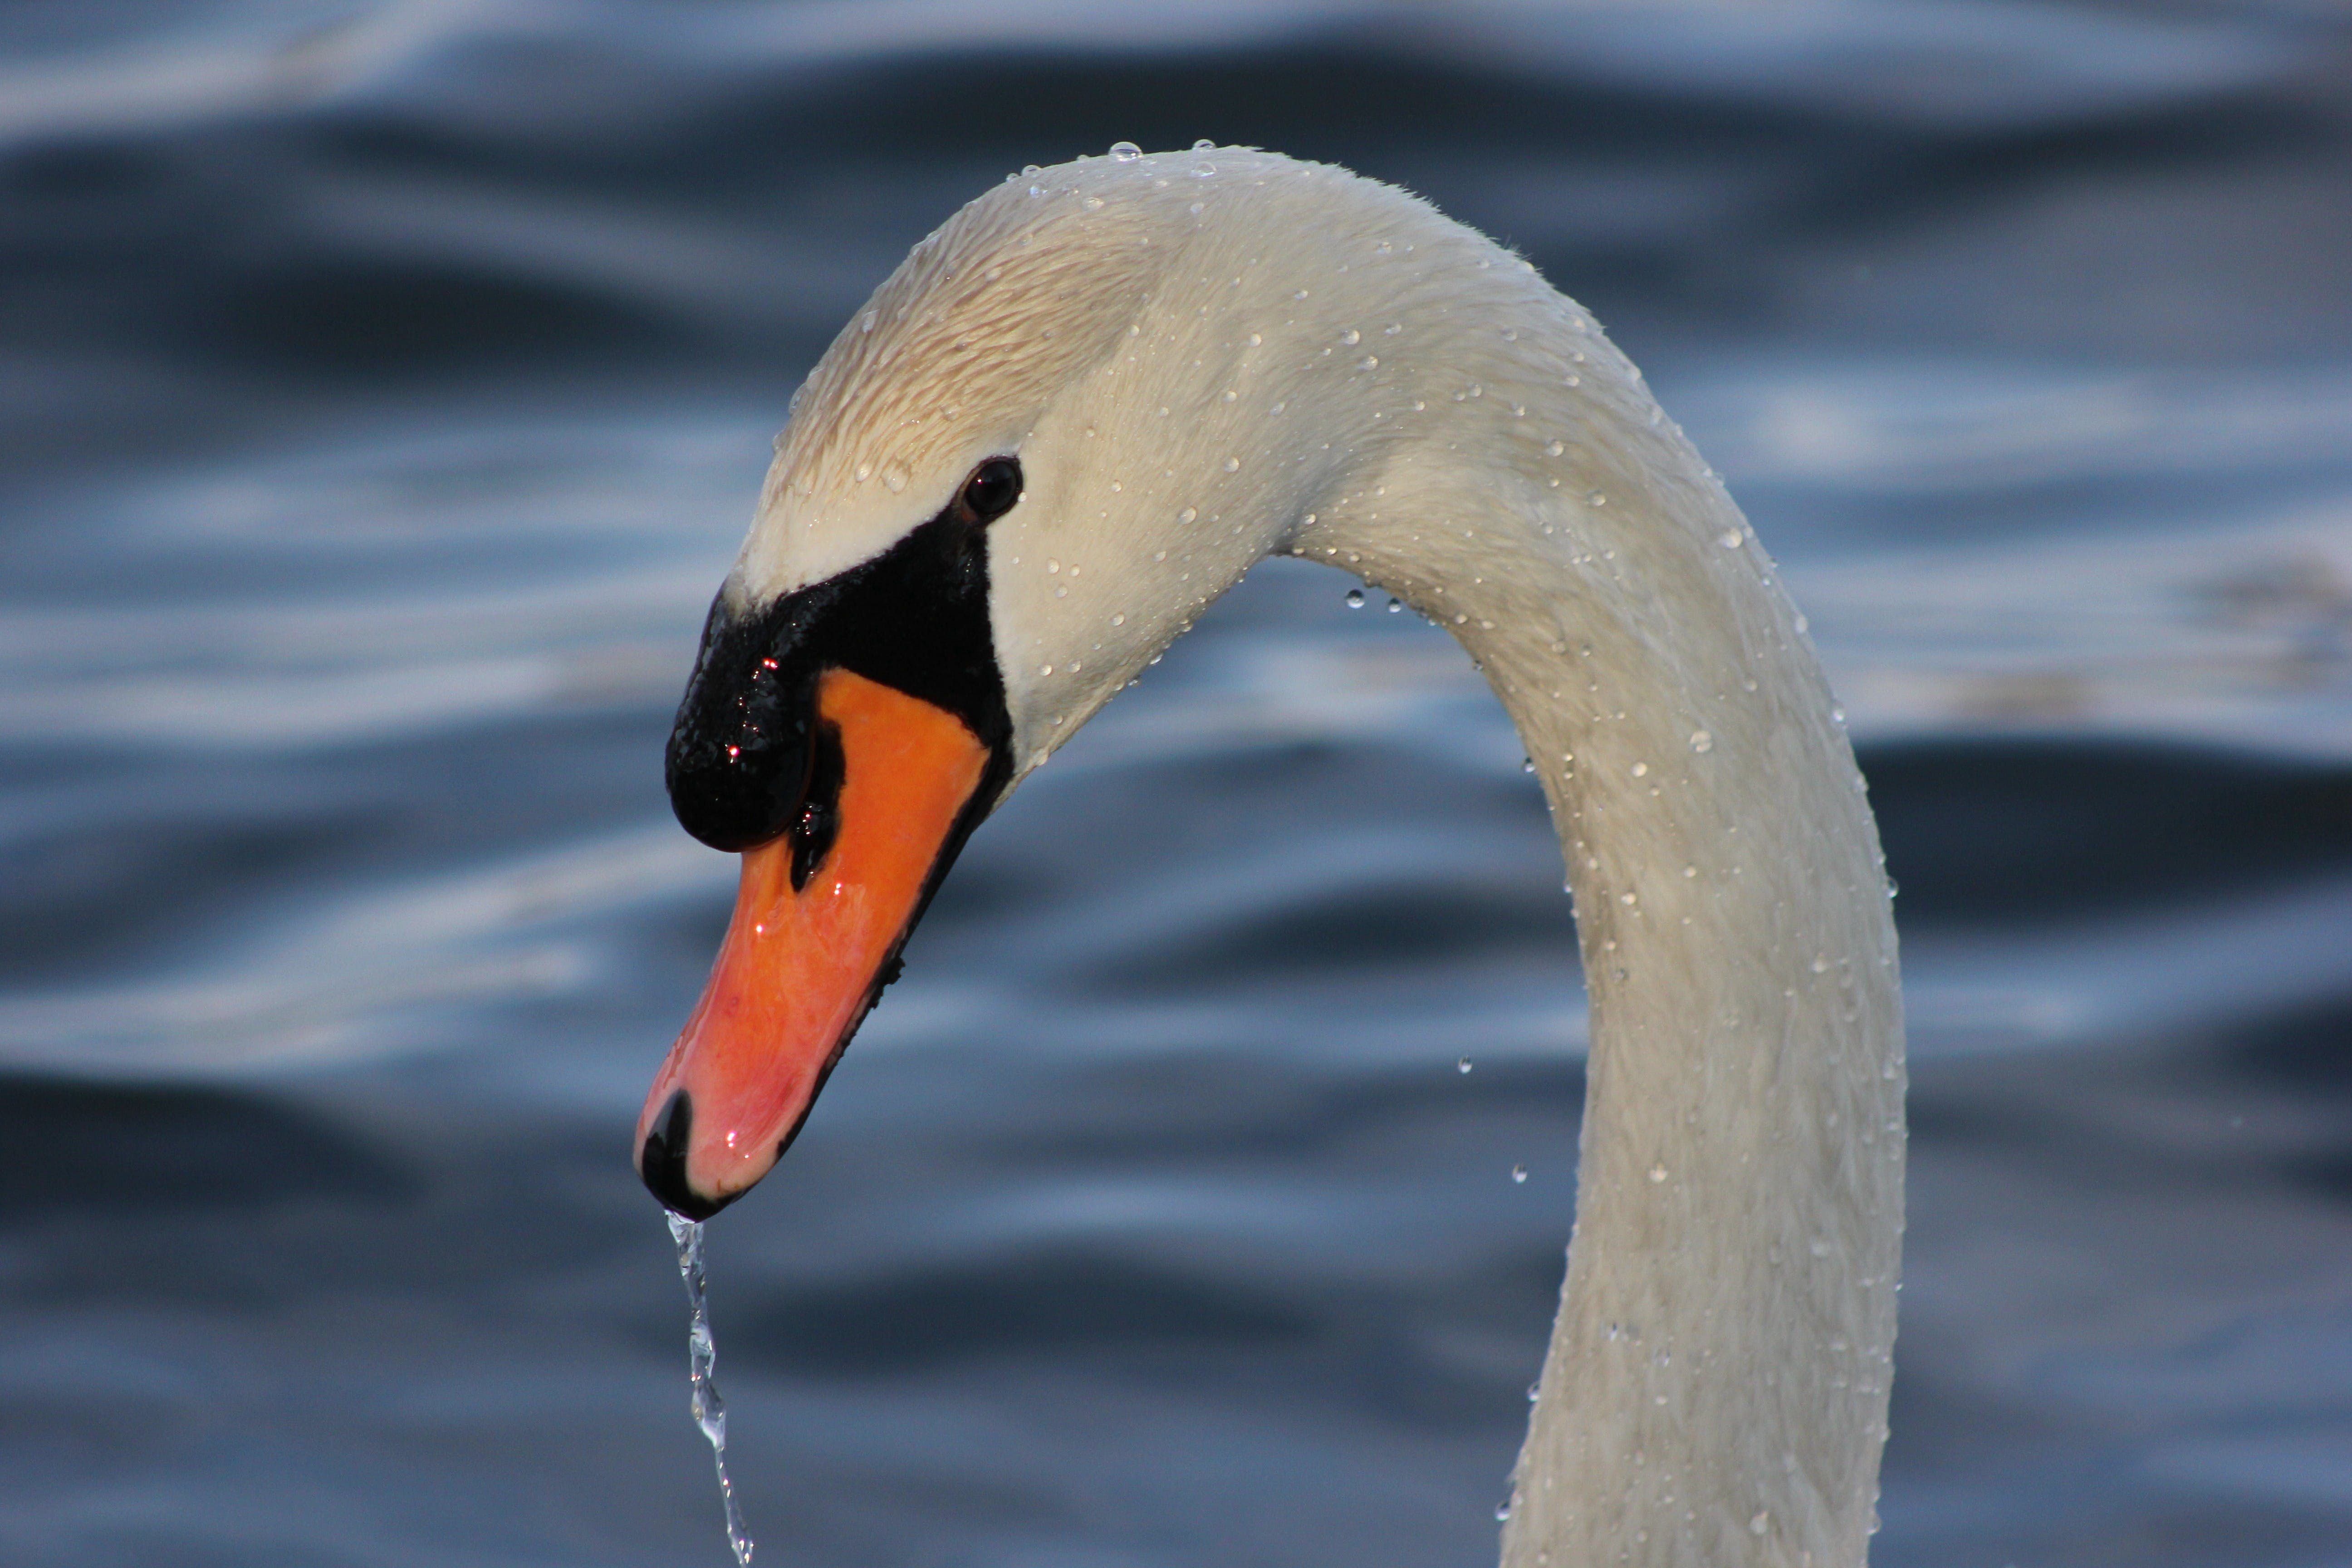 White Swan on Body on Water